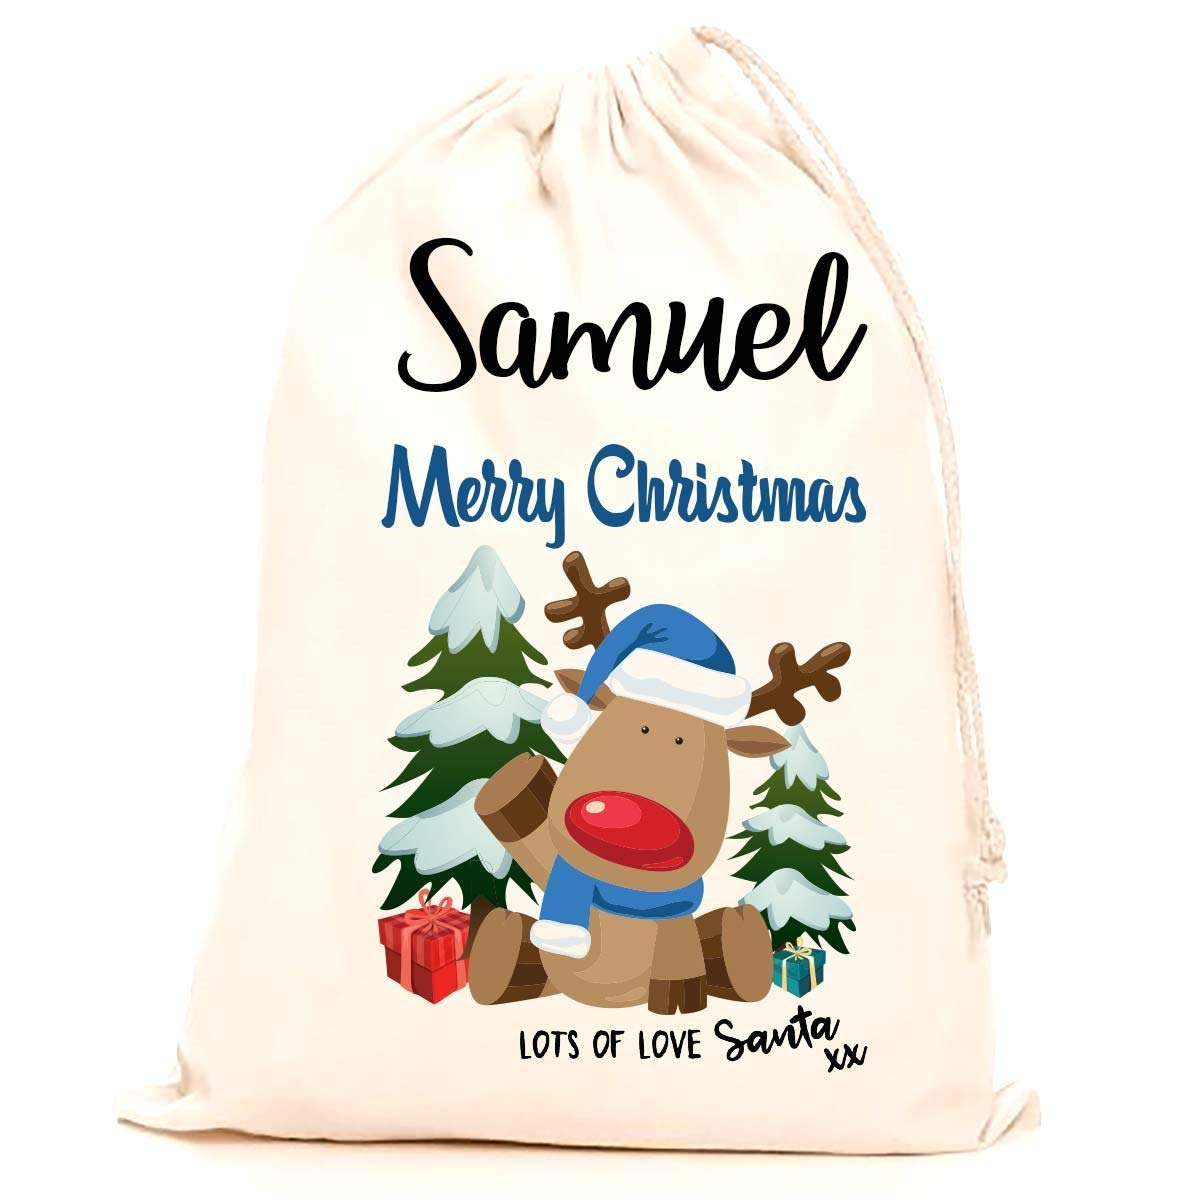 Treat Me Suite Samuel personalised name Christmas santa sack, stocking printed with a blue reindeer (75x50cm) 100% Cotton Large. Children, Kids, making it the perfect keepsake xmas gift/present. CS Printing Limited